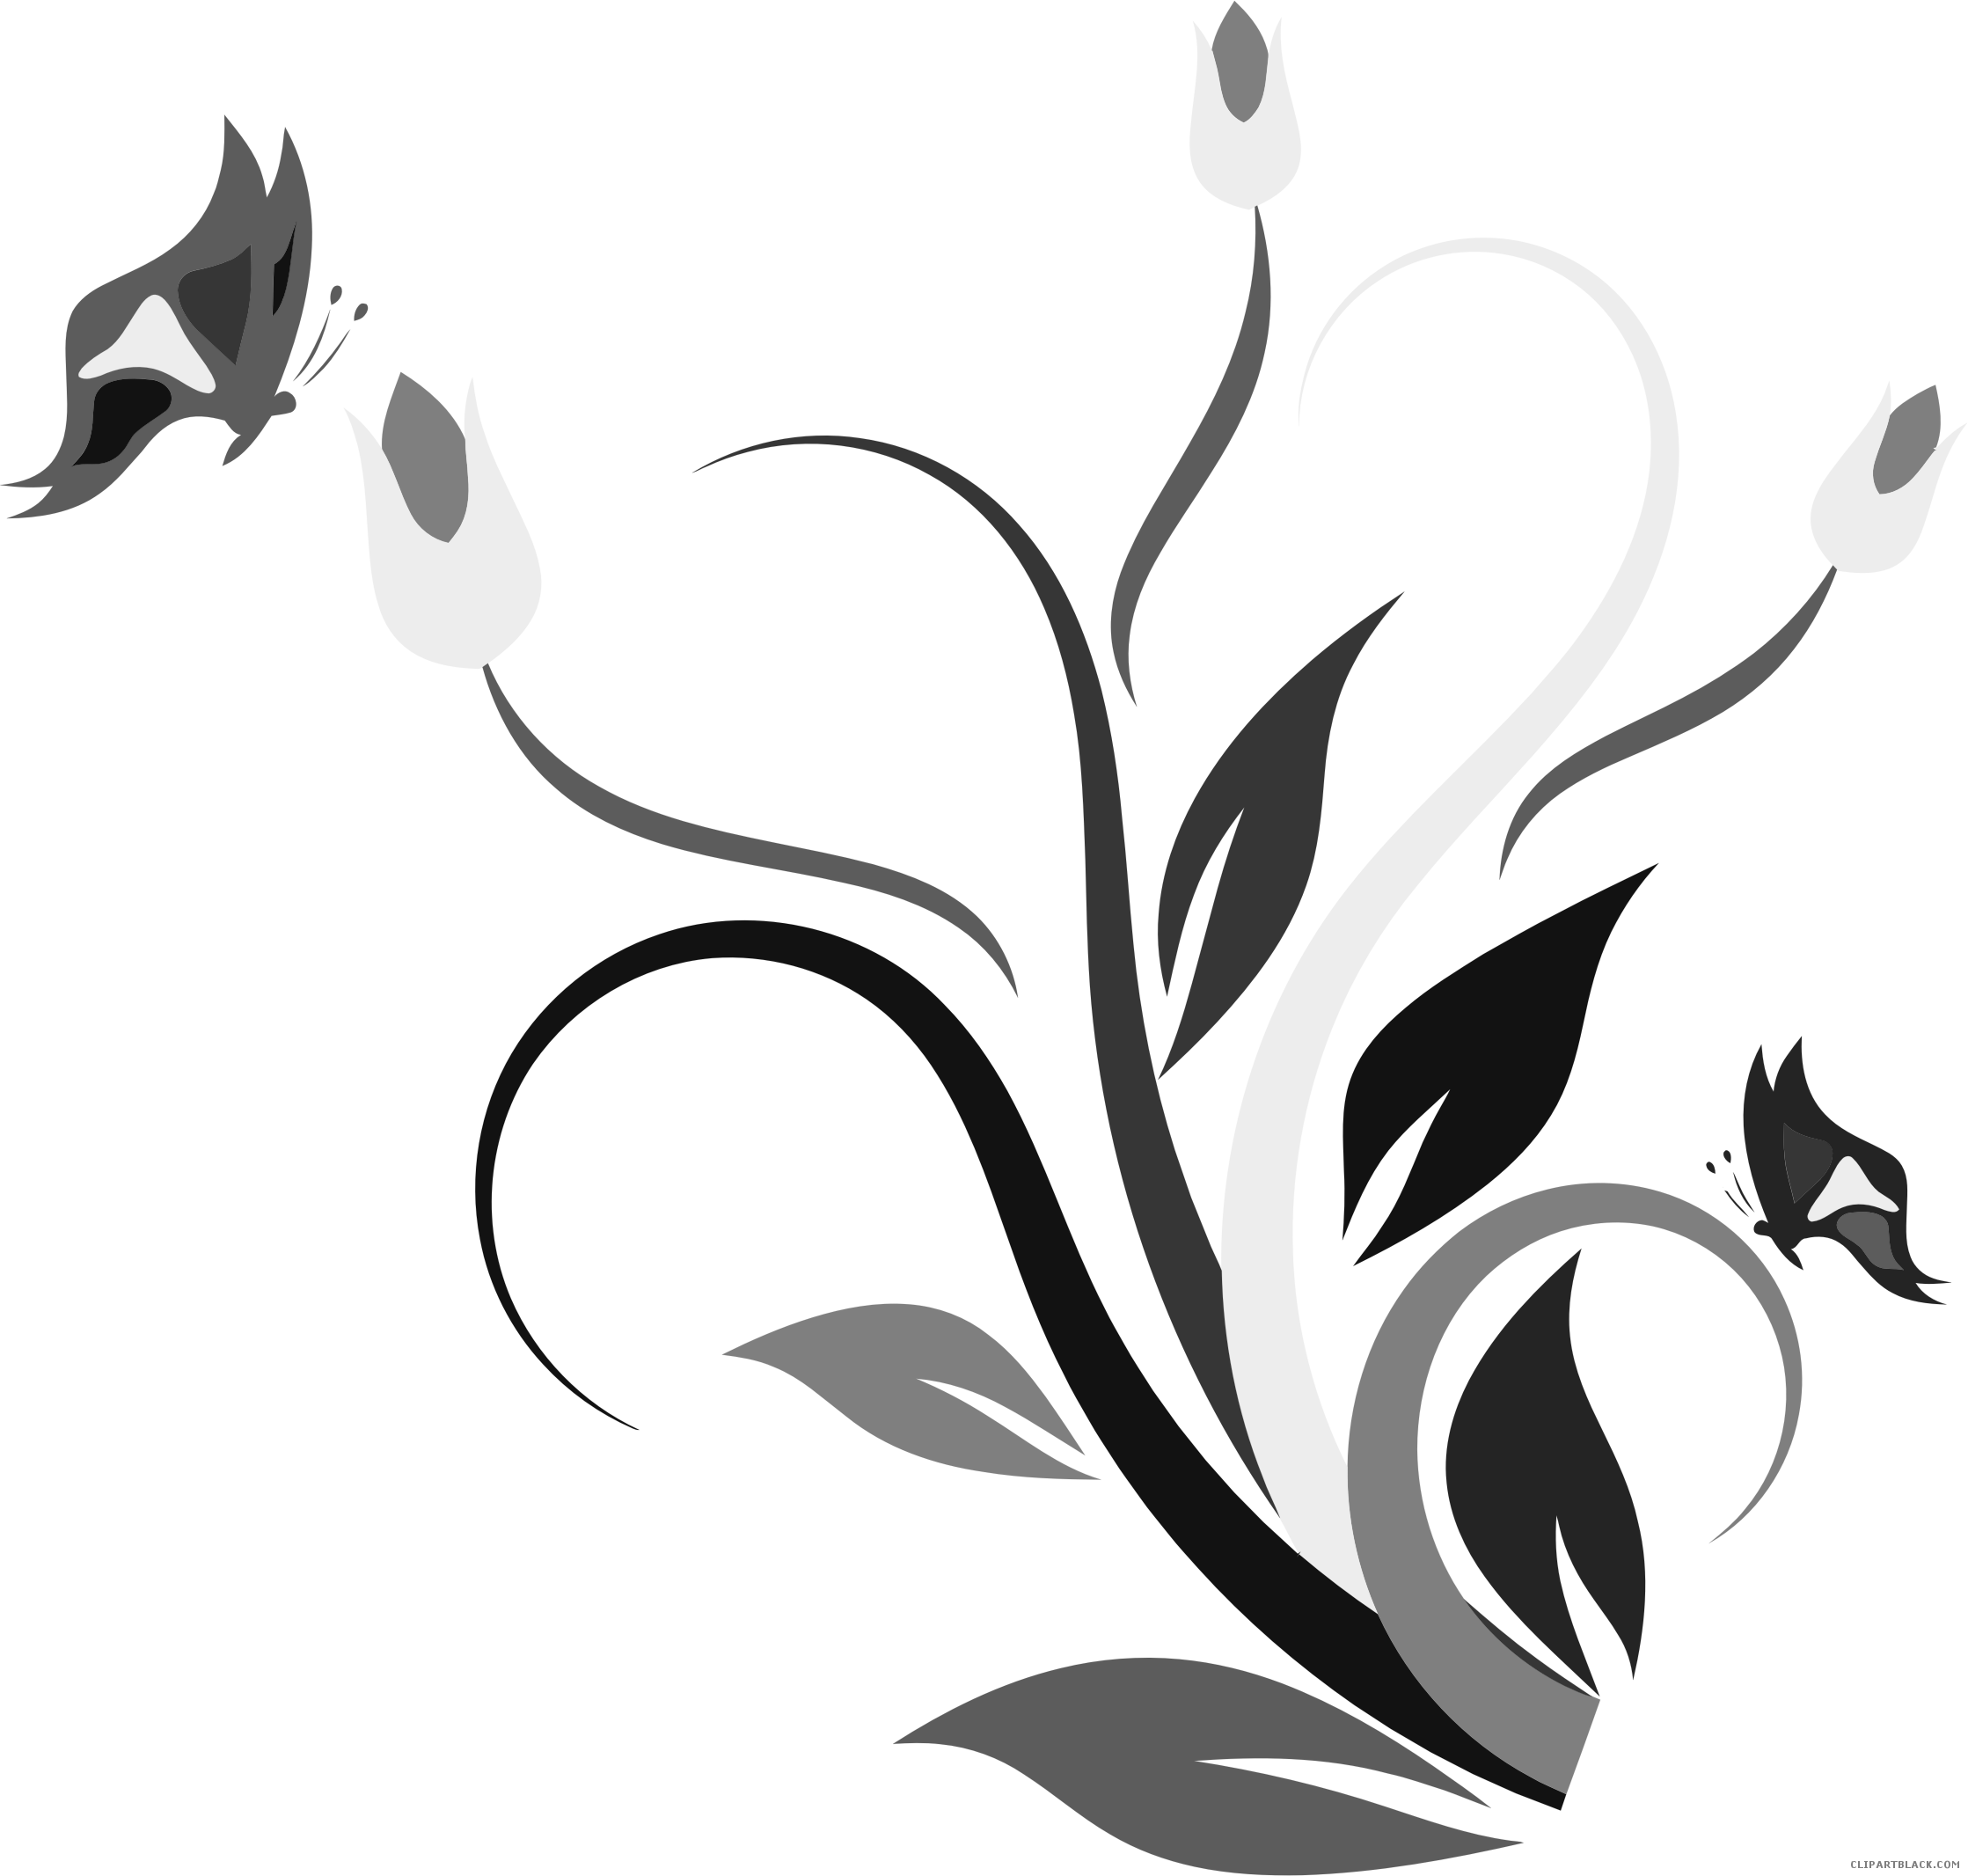 Butterfly on flower clipart picture black and white library Butterfly Flower Clipart - ClipartBlack.com picture black and white library